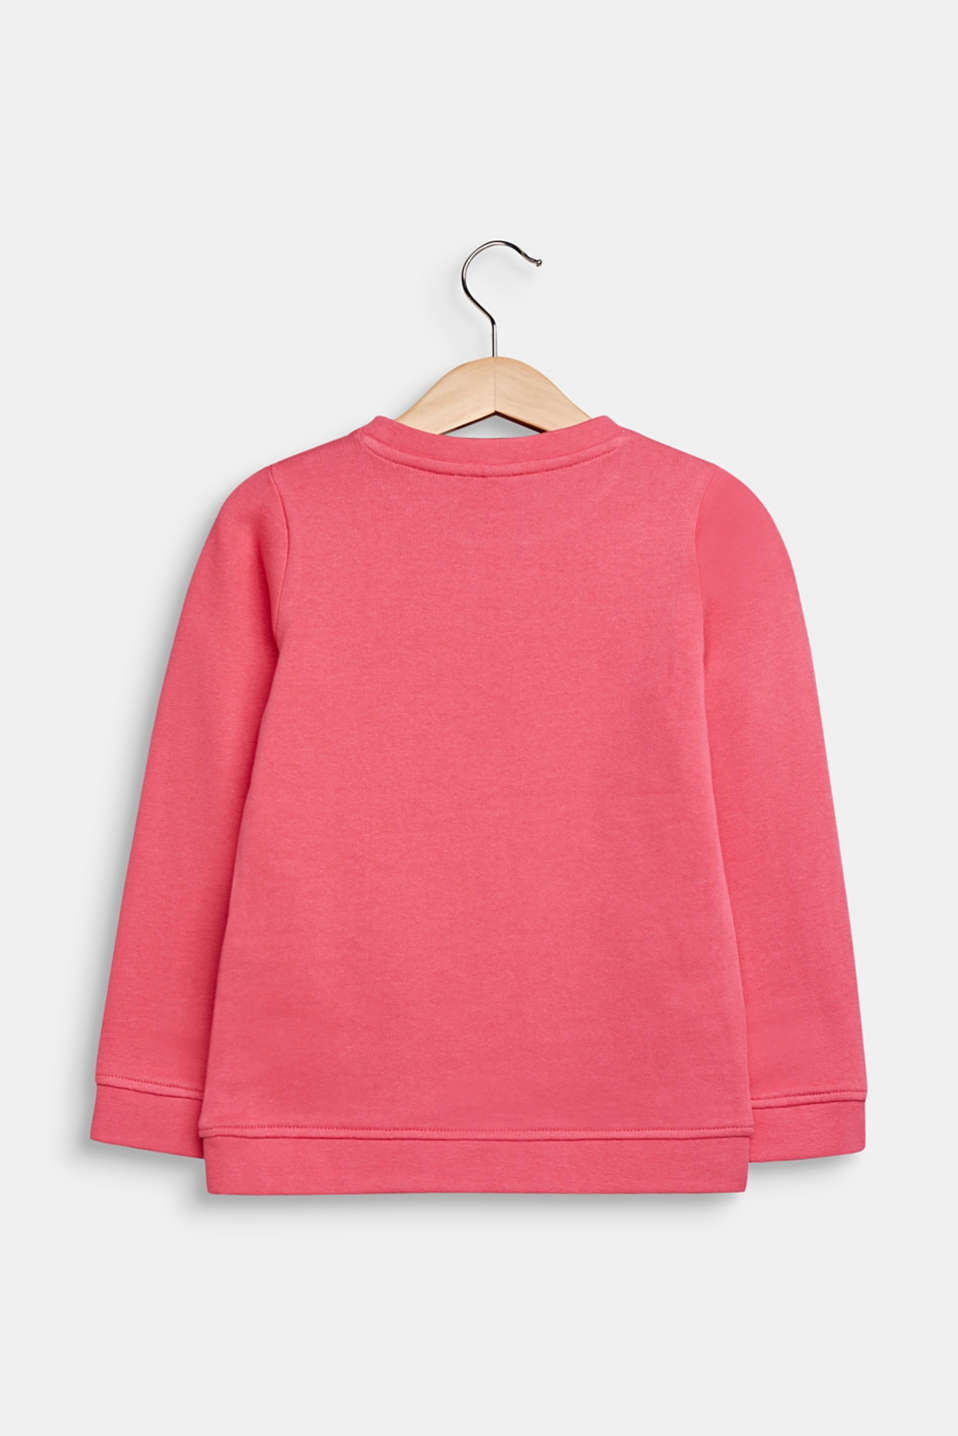 Sweatshirt with a print, 100% cotton, DARK PINK, detail image number 1